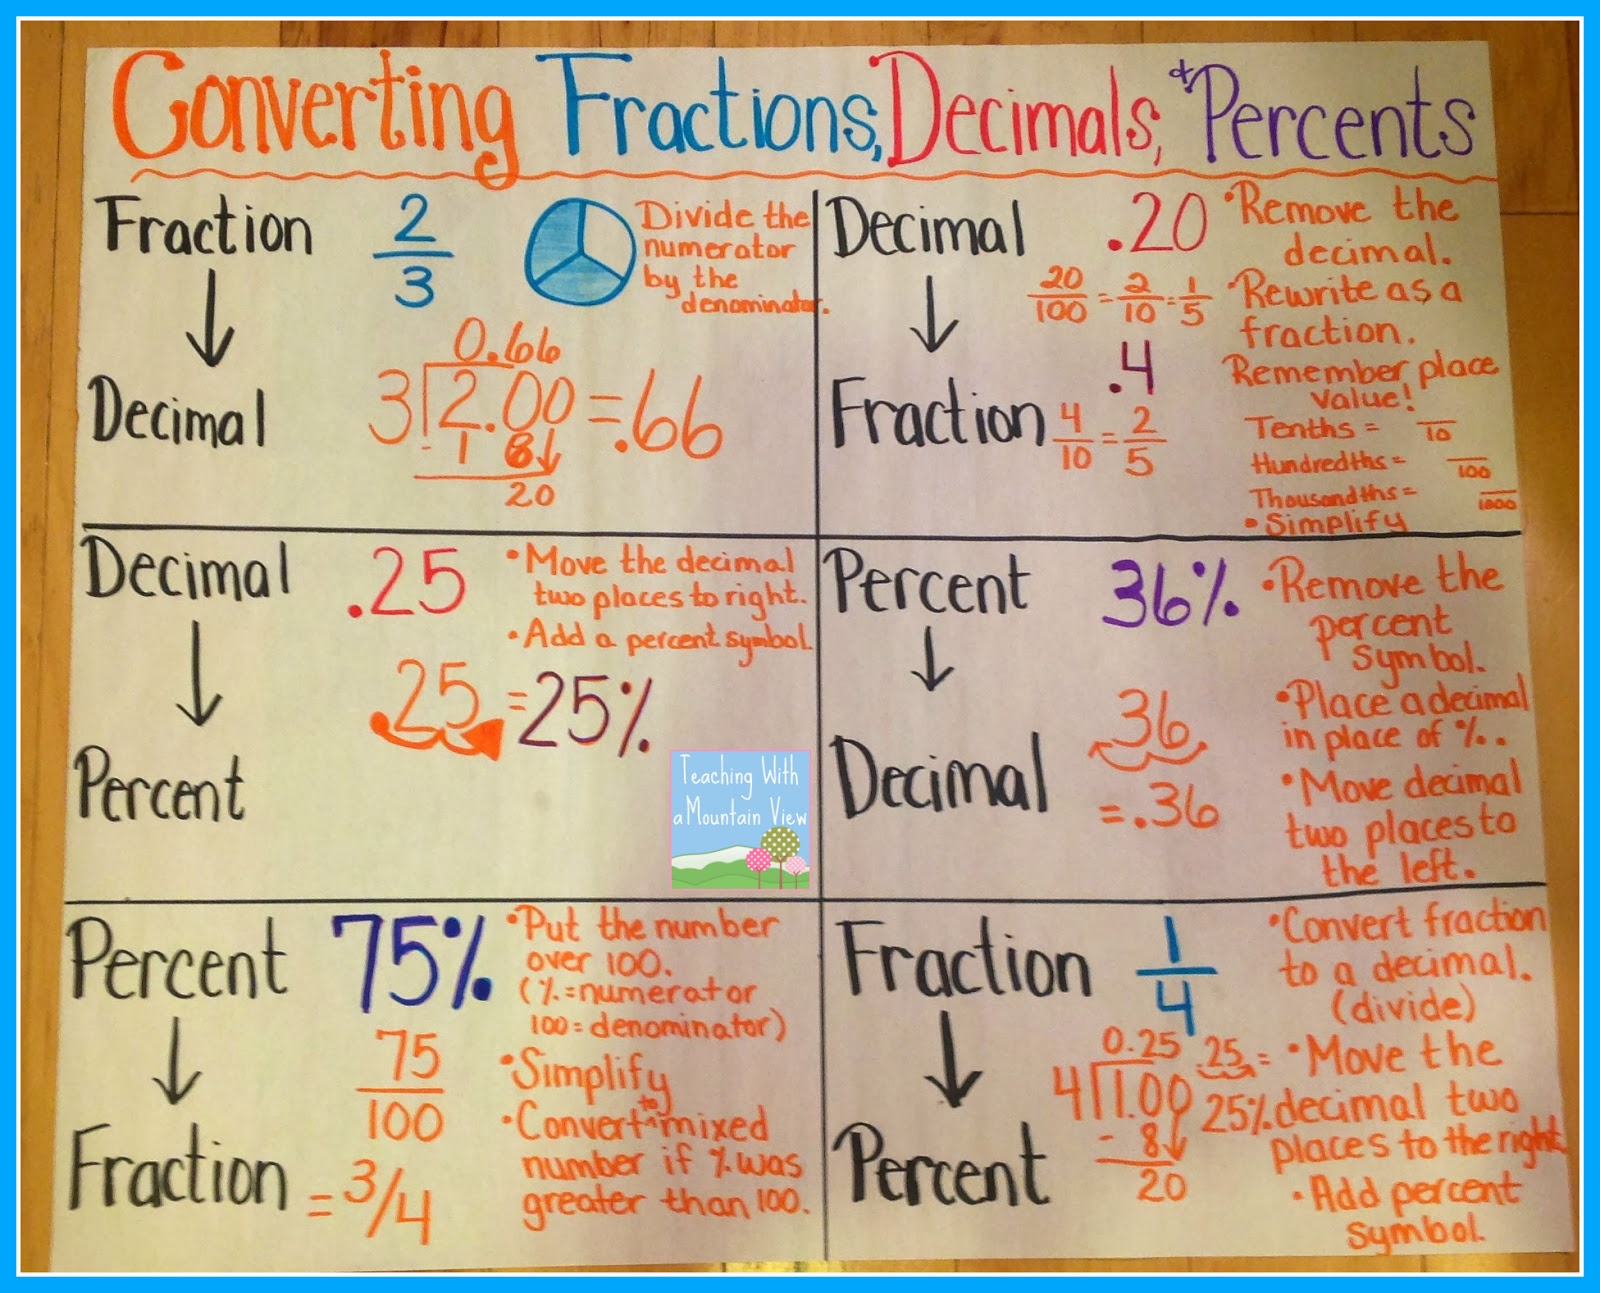 Percentages Fractions And Decimals Worksheet   Printable Worksheets and  Activities for Teachers [ 1293 x 1600 Pixel ]